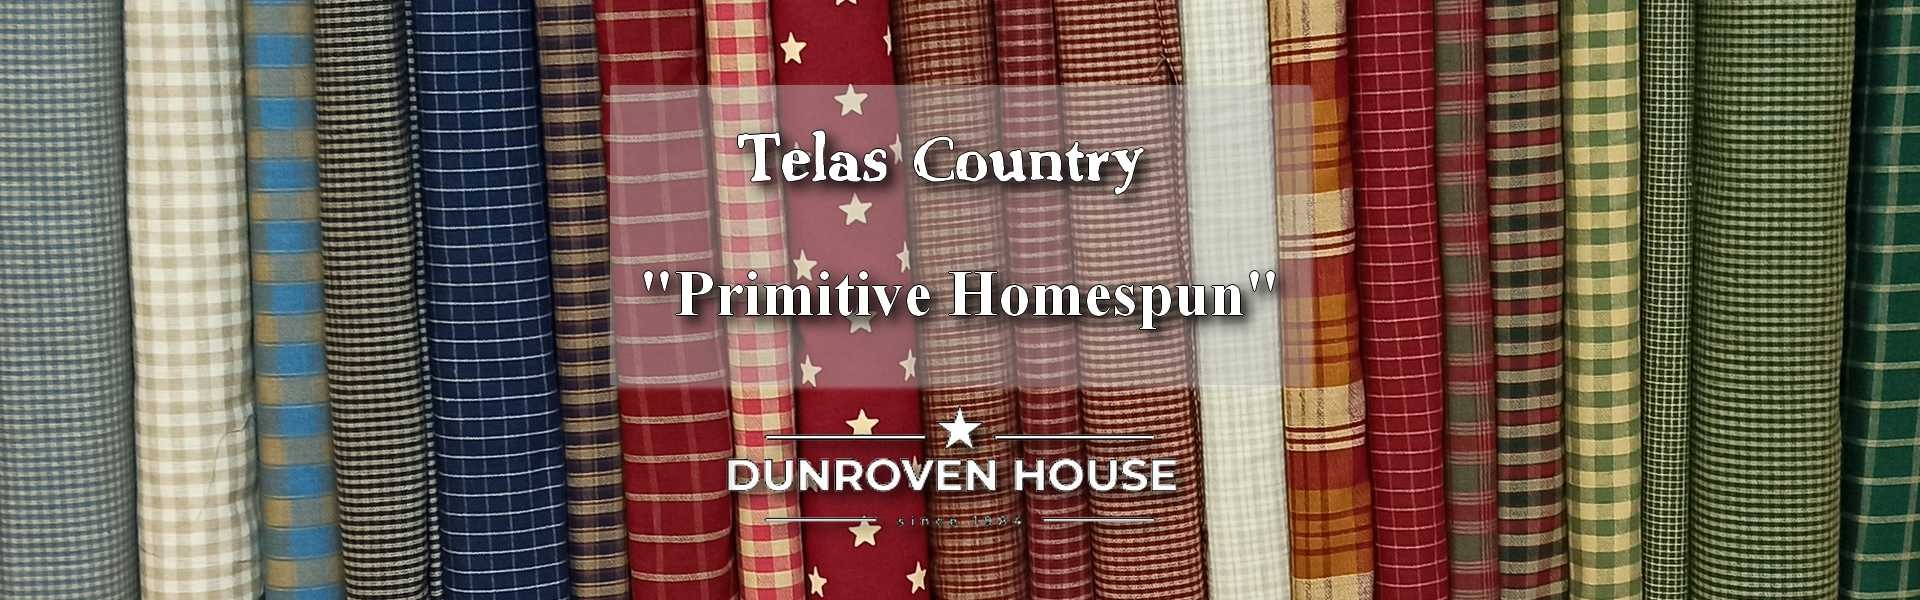 Telas Country Primitive Homespun Dunroven House en Las Tijeras de Gloria